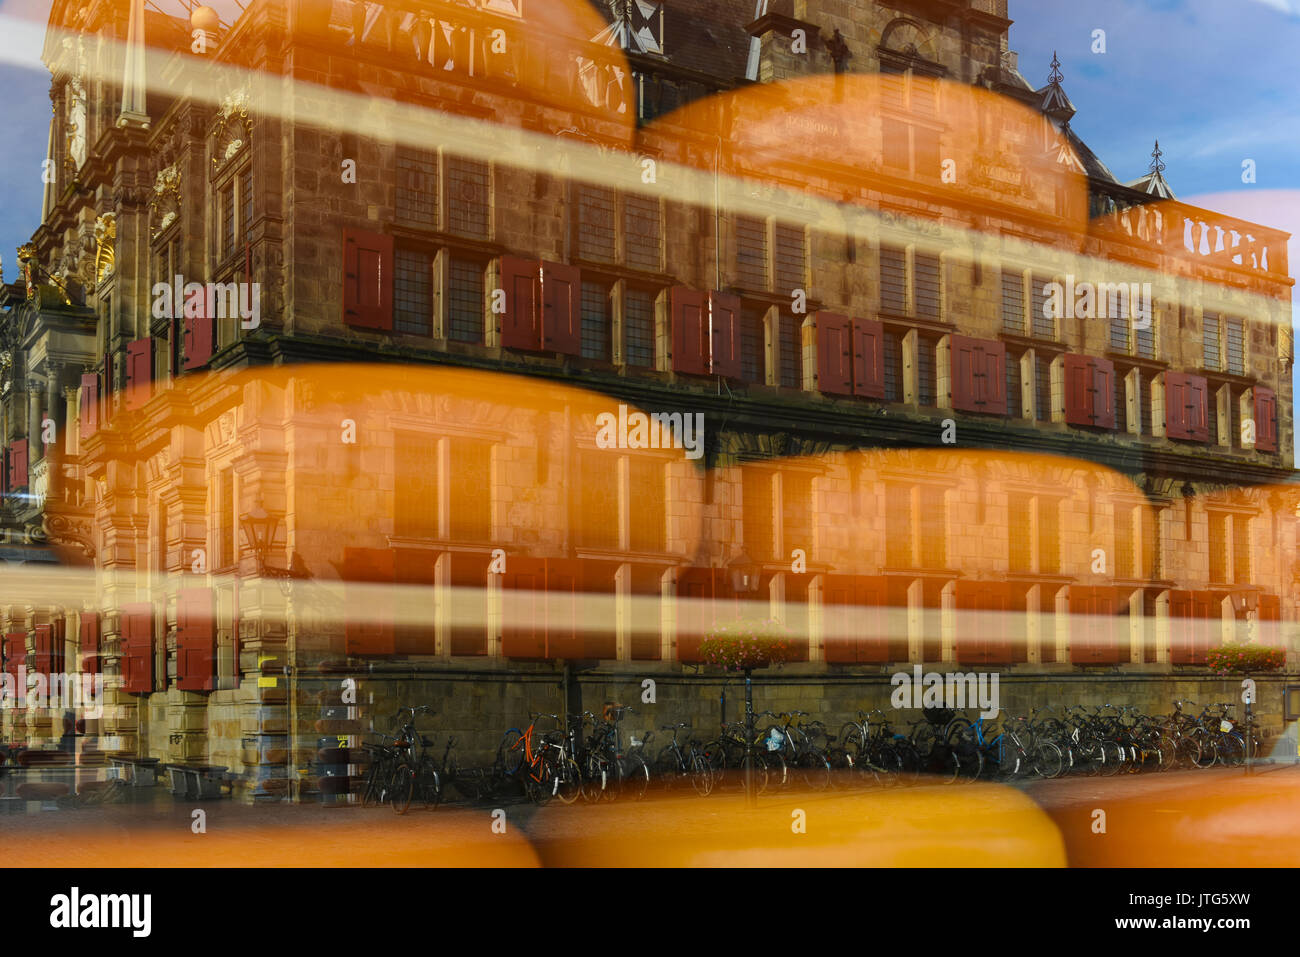 The Stadhuis or City Hall reflected in the window of a cheese shop in Delft, South Holland, The Netherlands - Stock Image